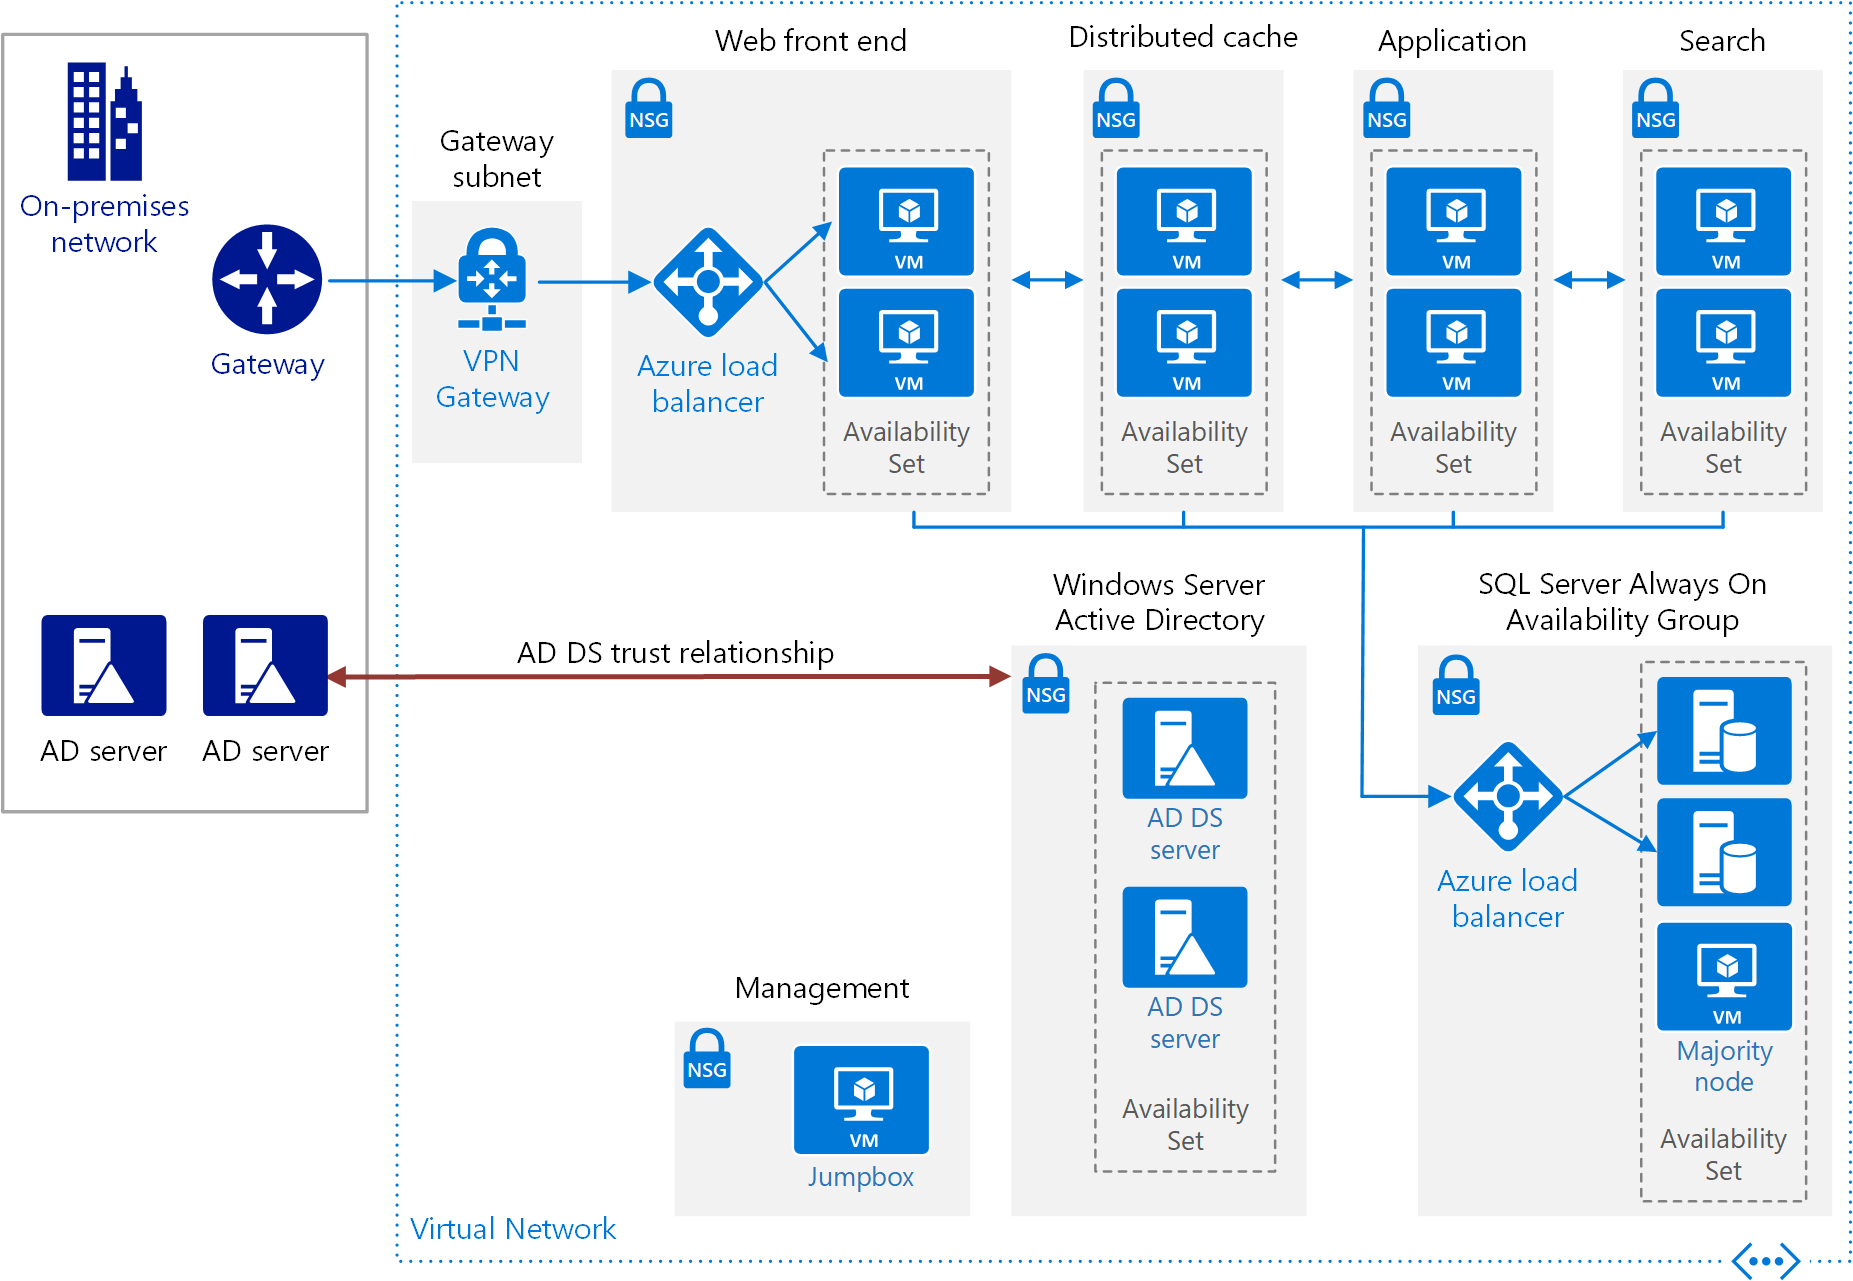 SharePoint 2016 HA farm infrastructure